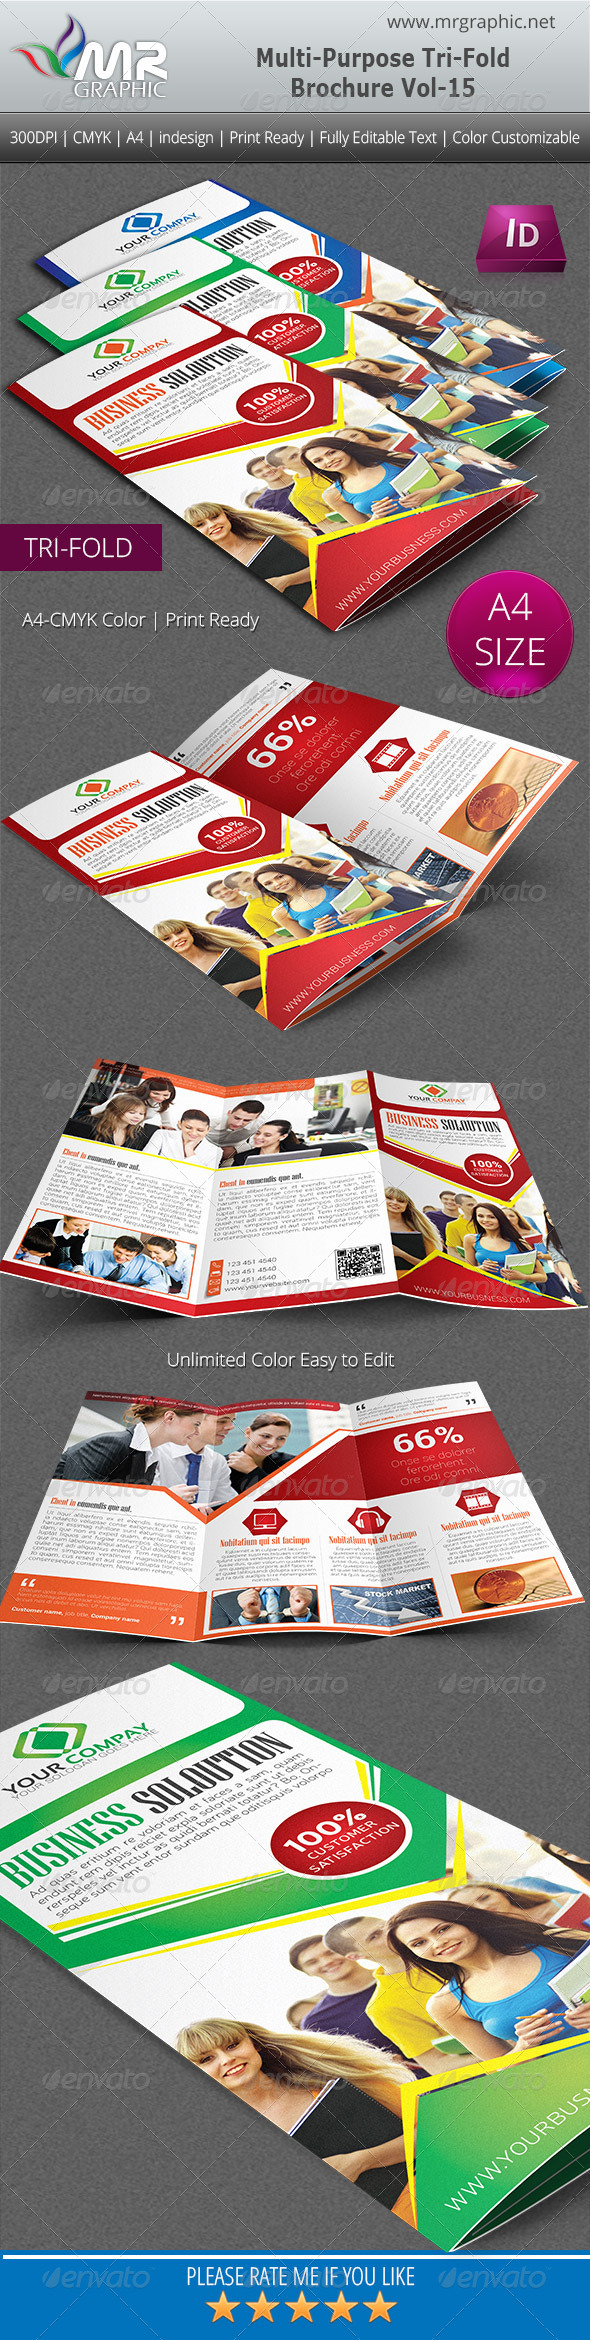 Multipurpose Business Tri-Fold Brochure Vol-15 - Corporate Brochures